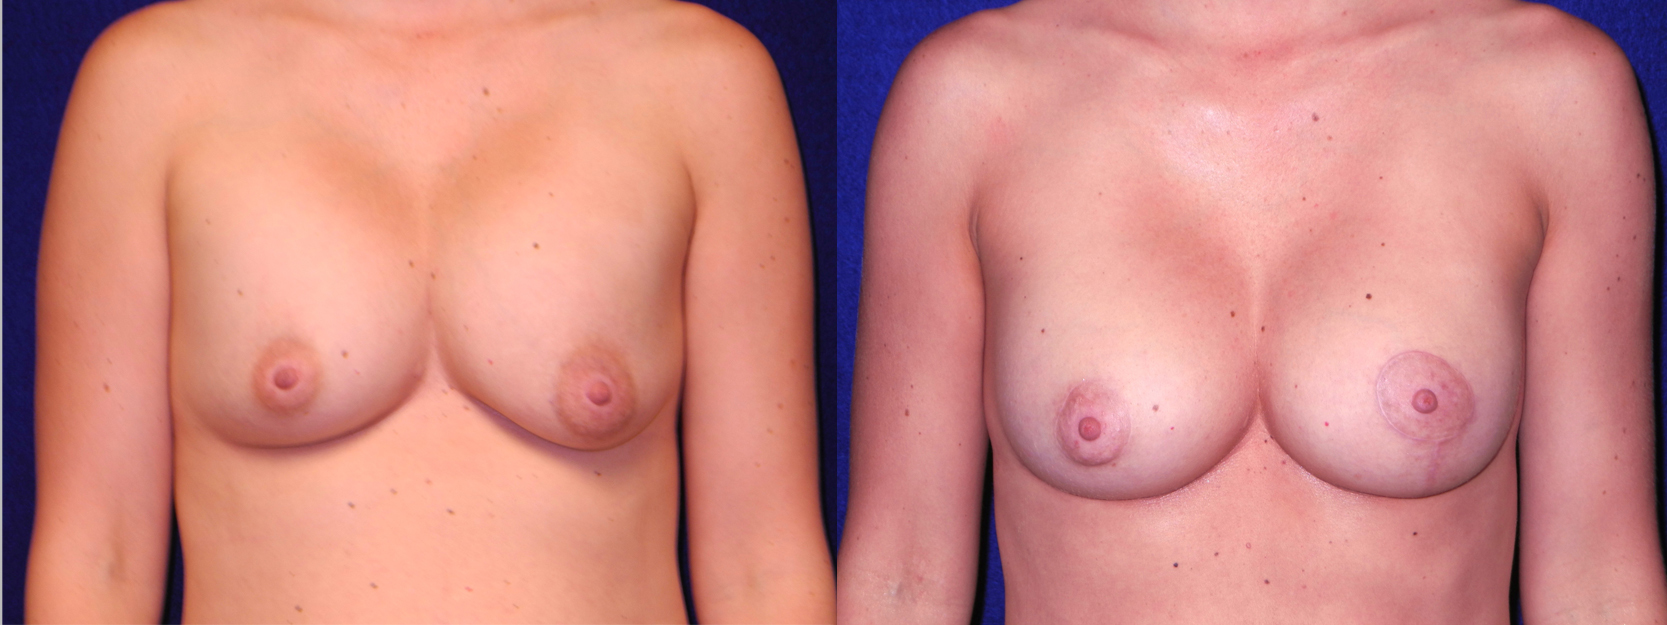 Frontal View - Implant Revision and Breast Lift